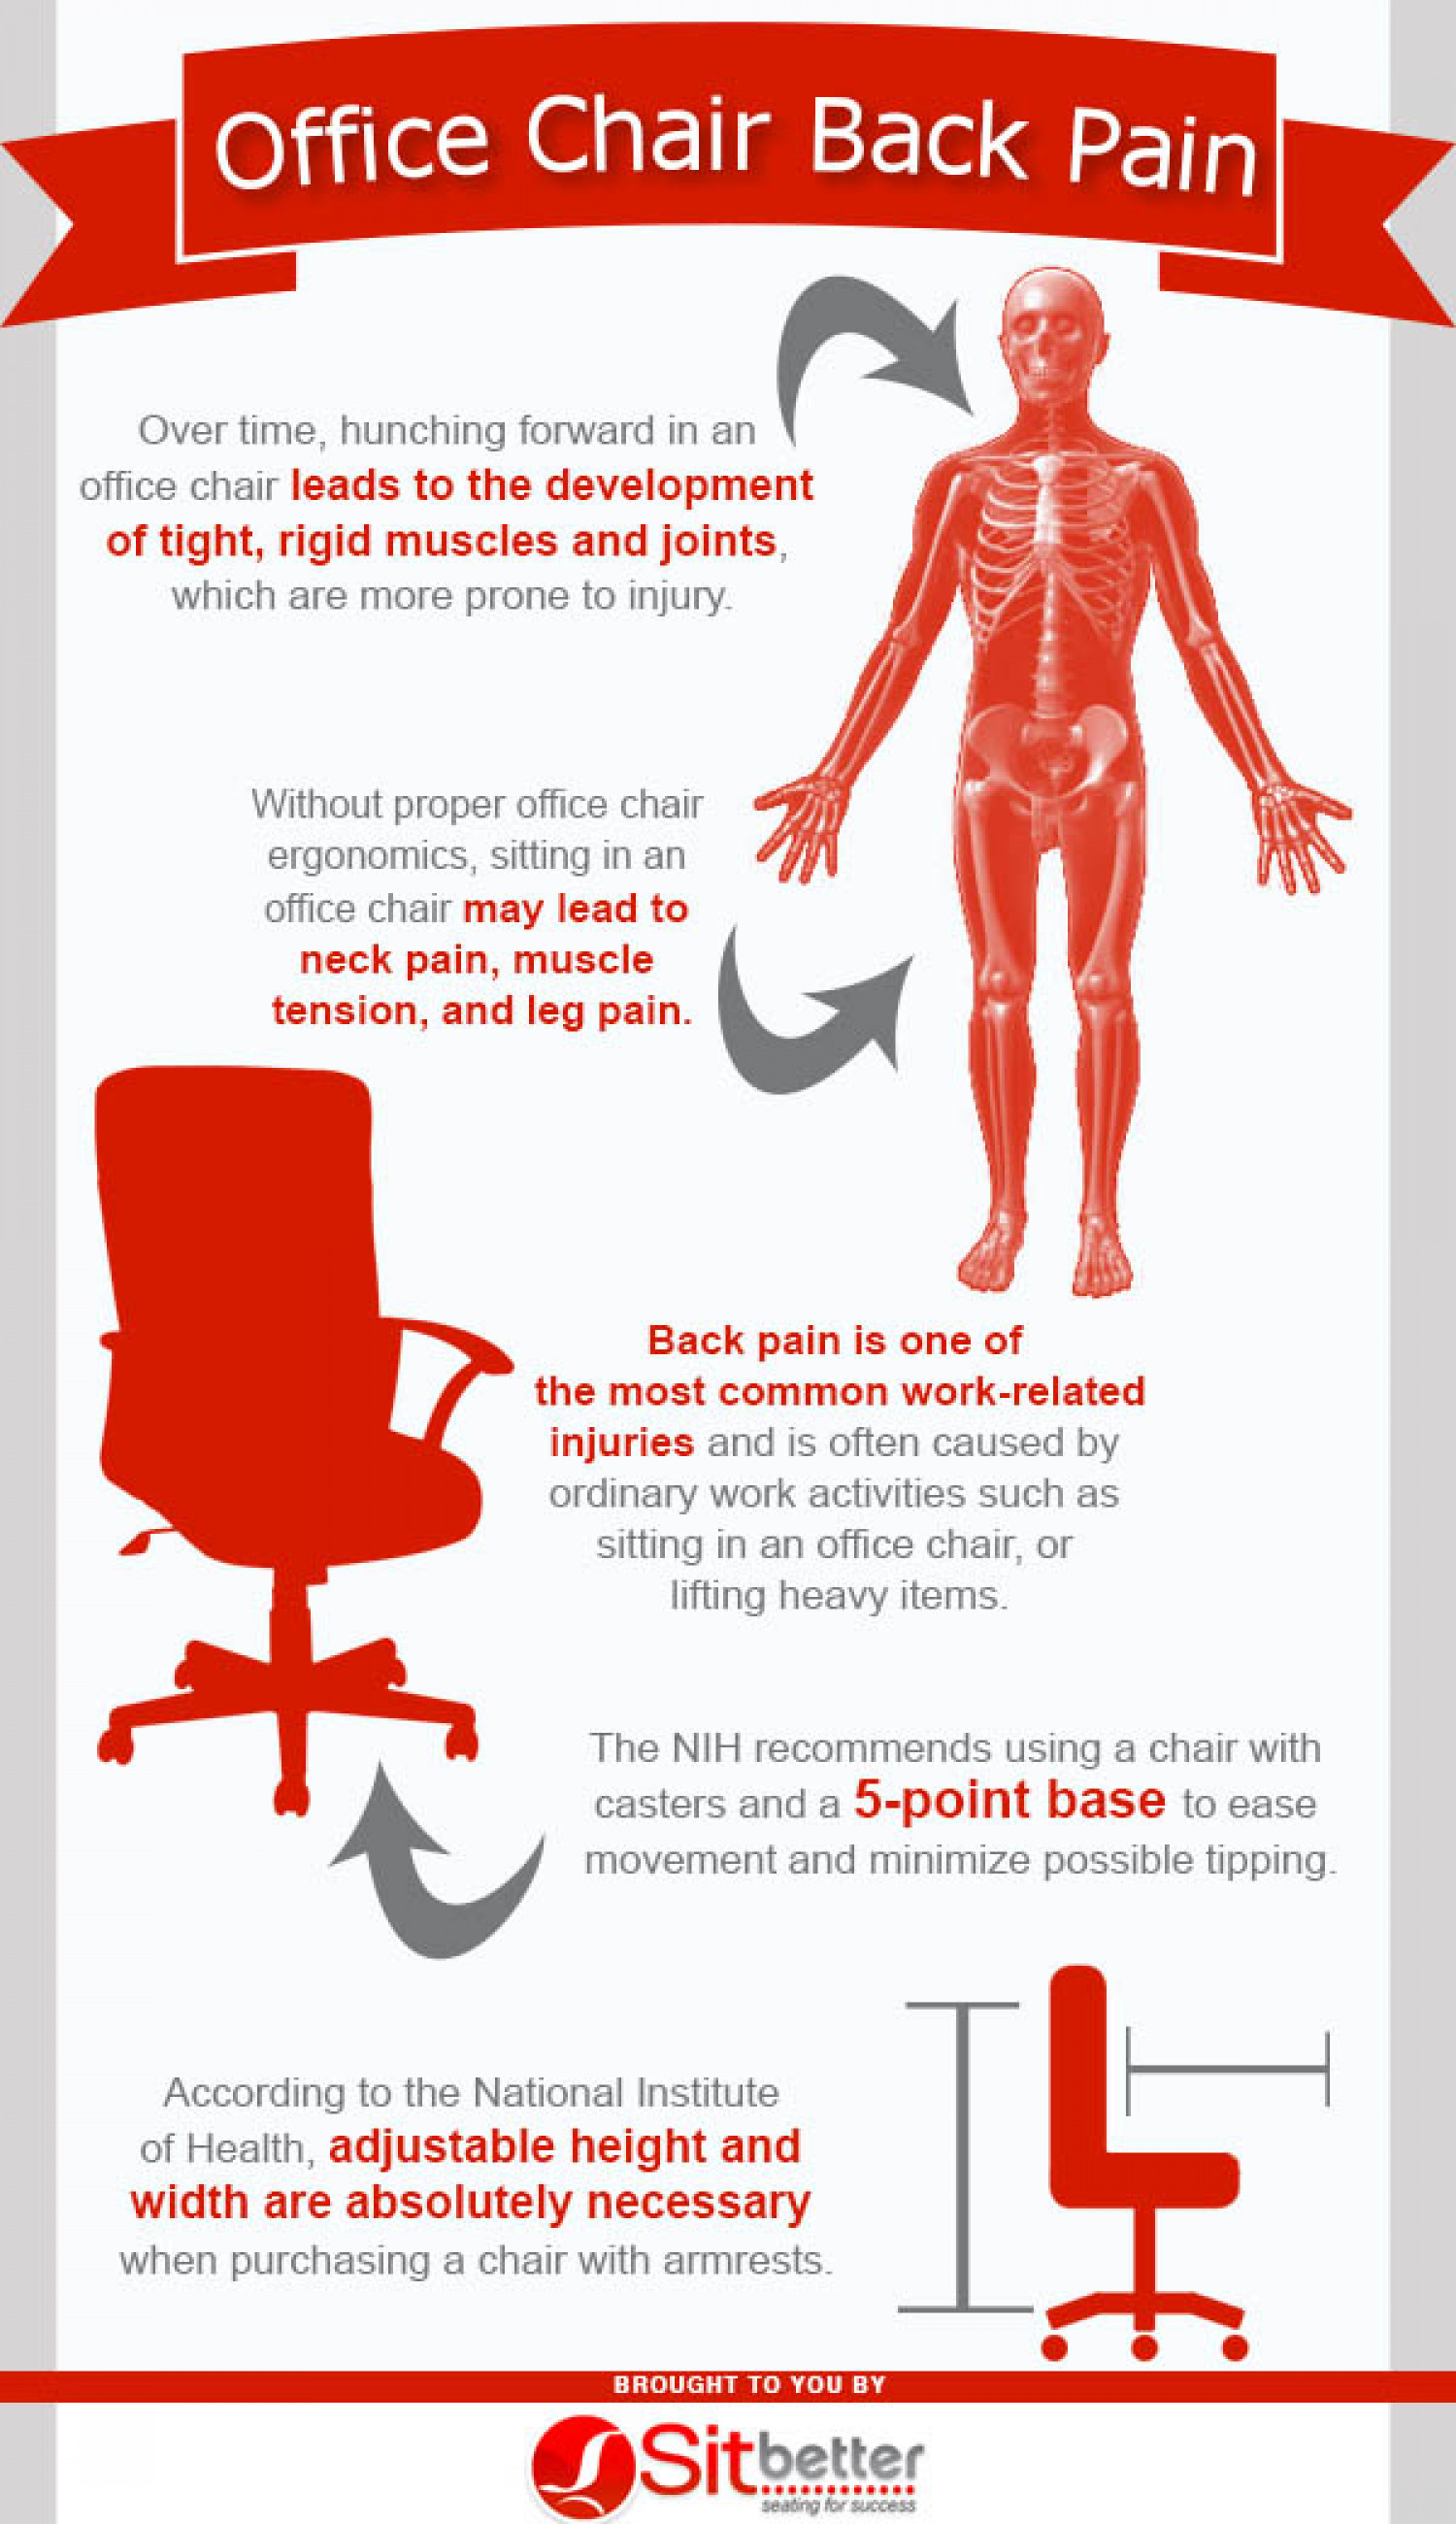 fice Chair Back Pain